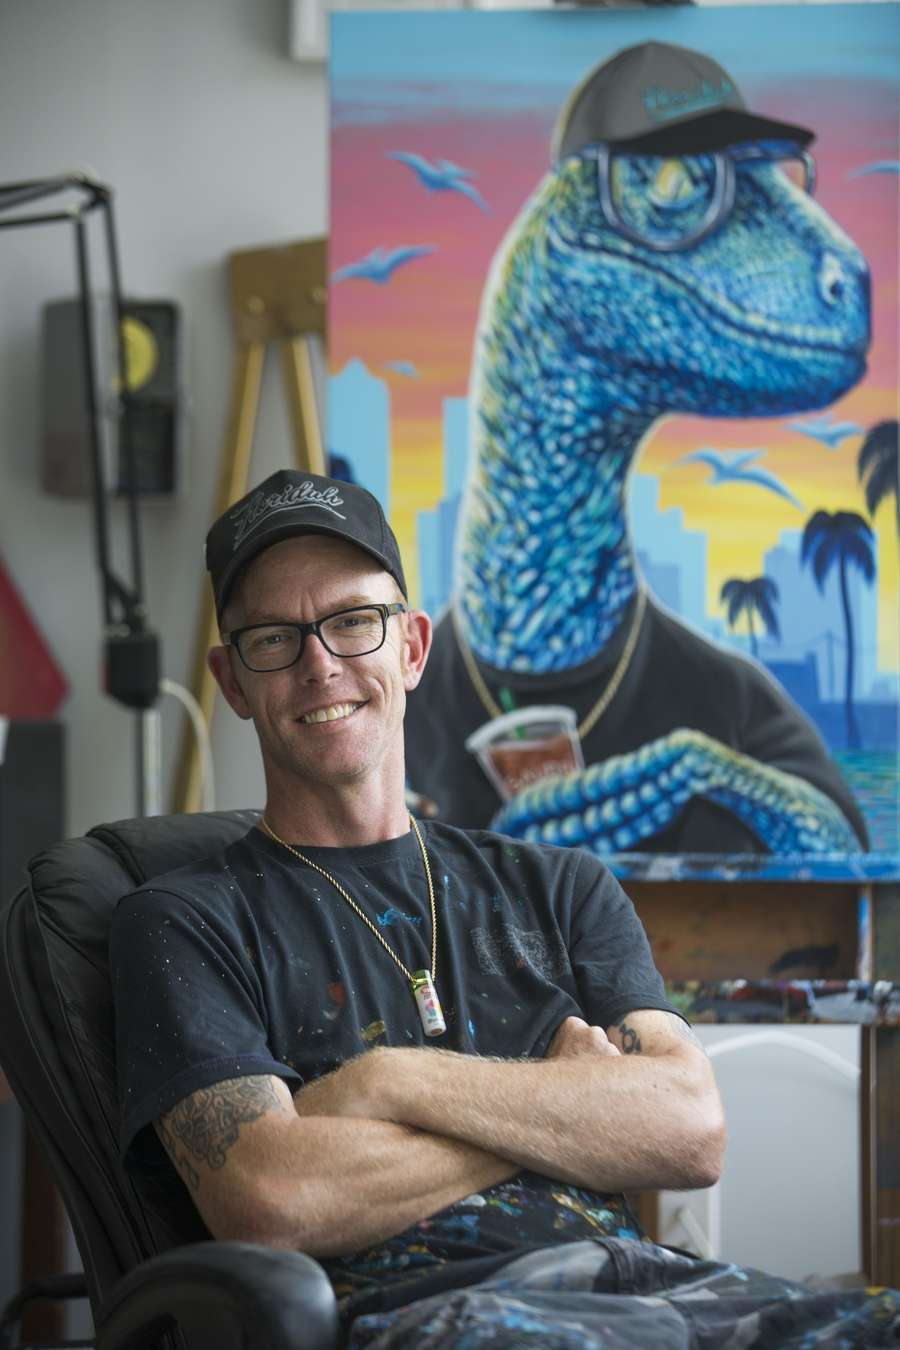 Derek Donnelly poses for a portrait in his studio in Pinellas Park on Thursday, May 24, 2018. Donnelly is a local artist who has painted many murals in Downtown St. Petersburg. EVE EDELHEIT | Times